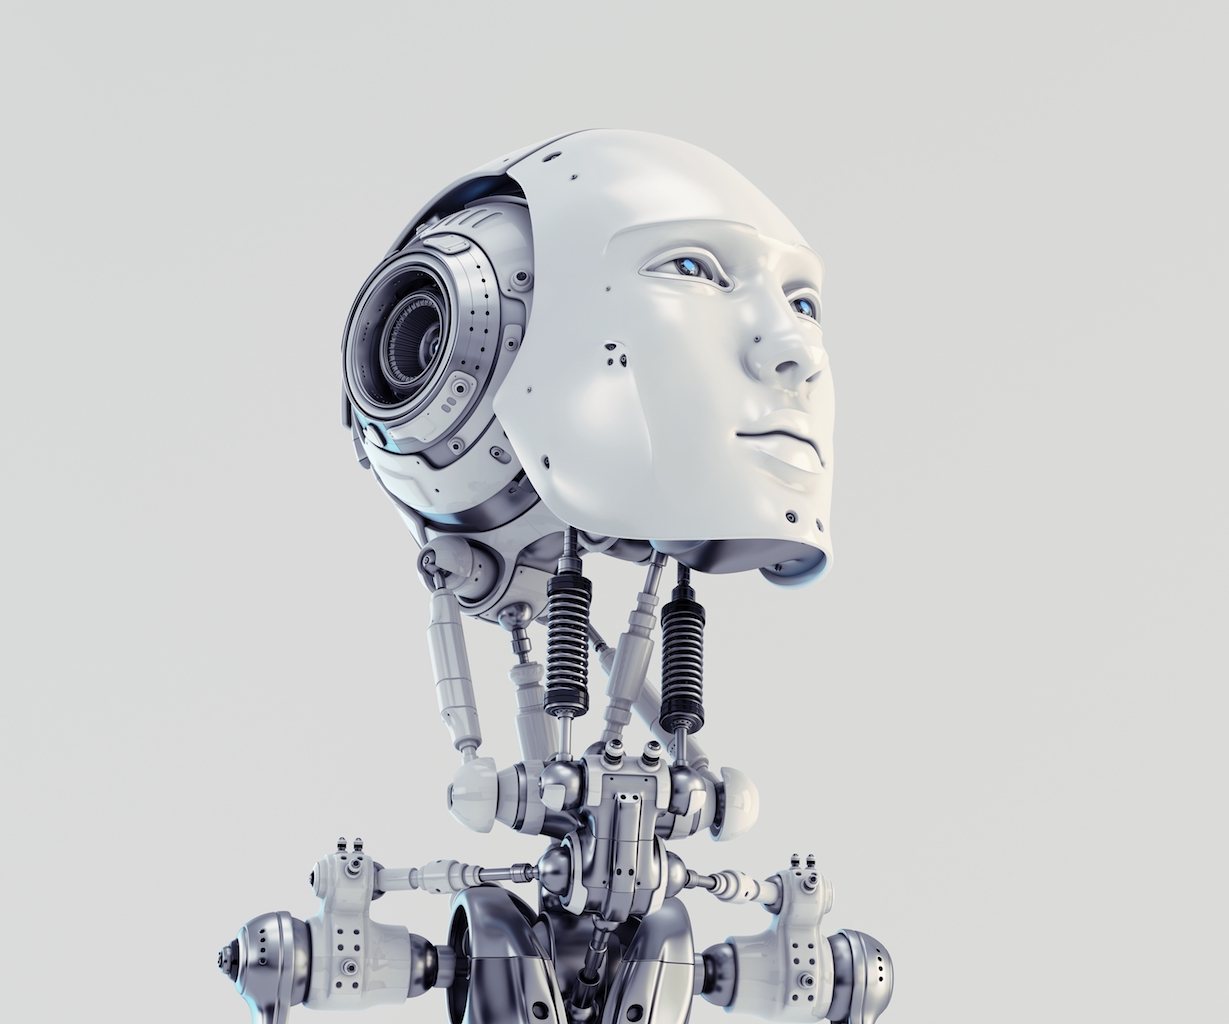 What Would Jesus Do?: The Moral Ramifications of Artificial Intelligence